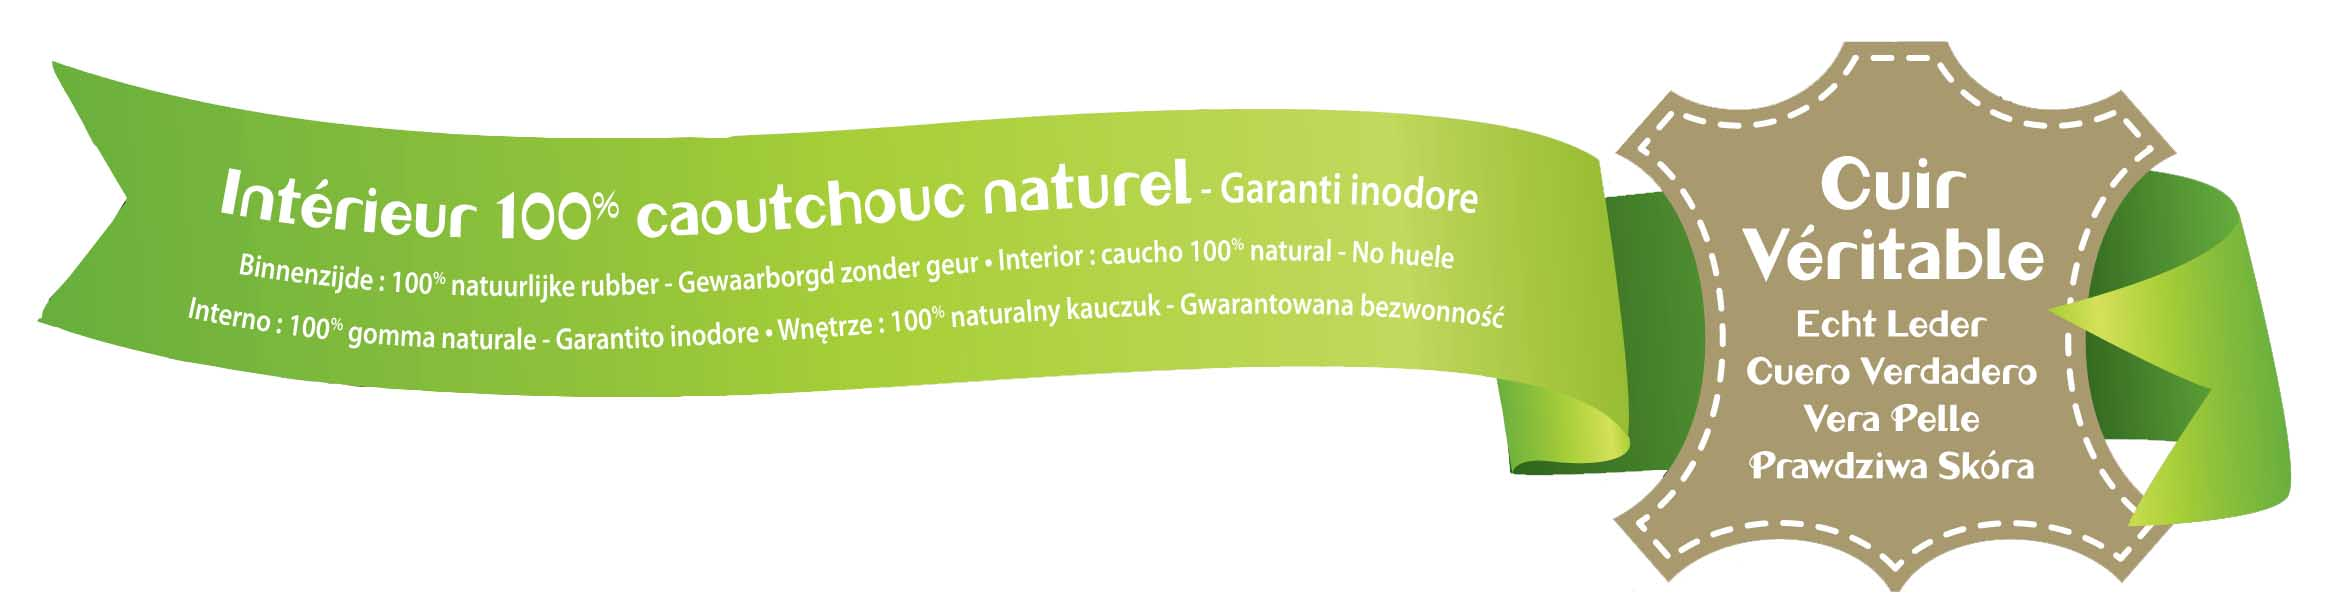 Fanion Label Caoutchouc naturel.jpg